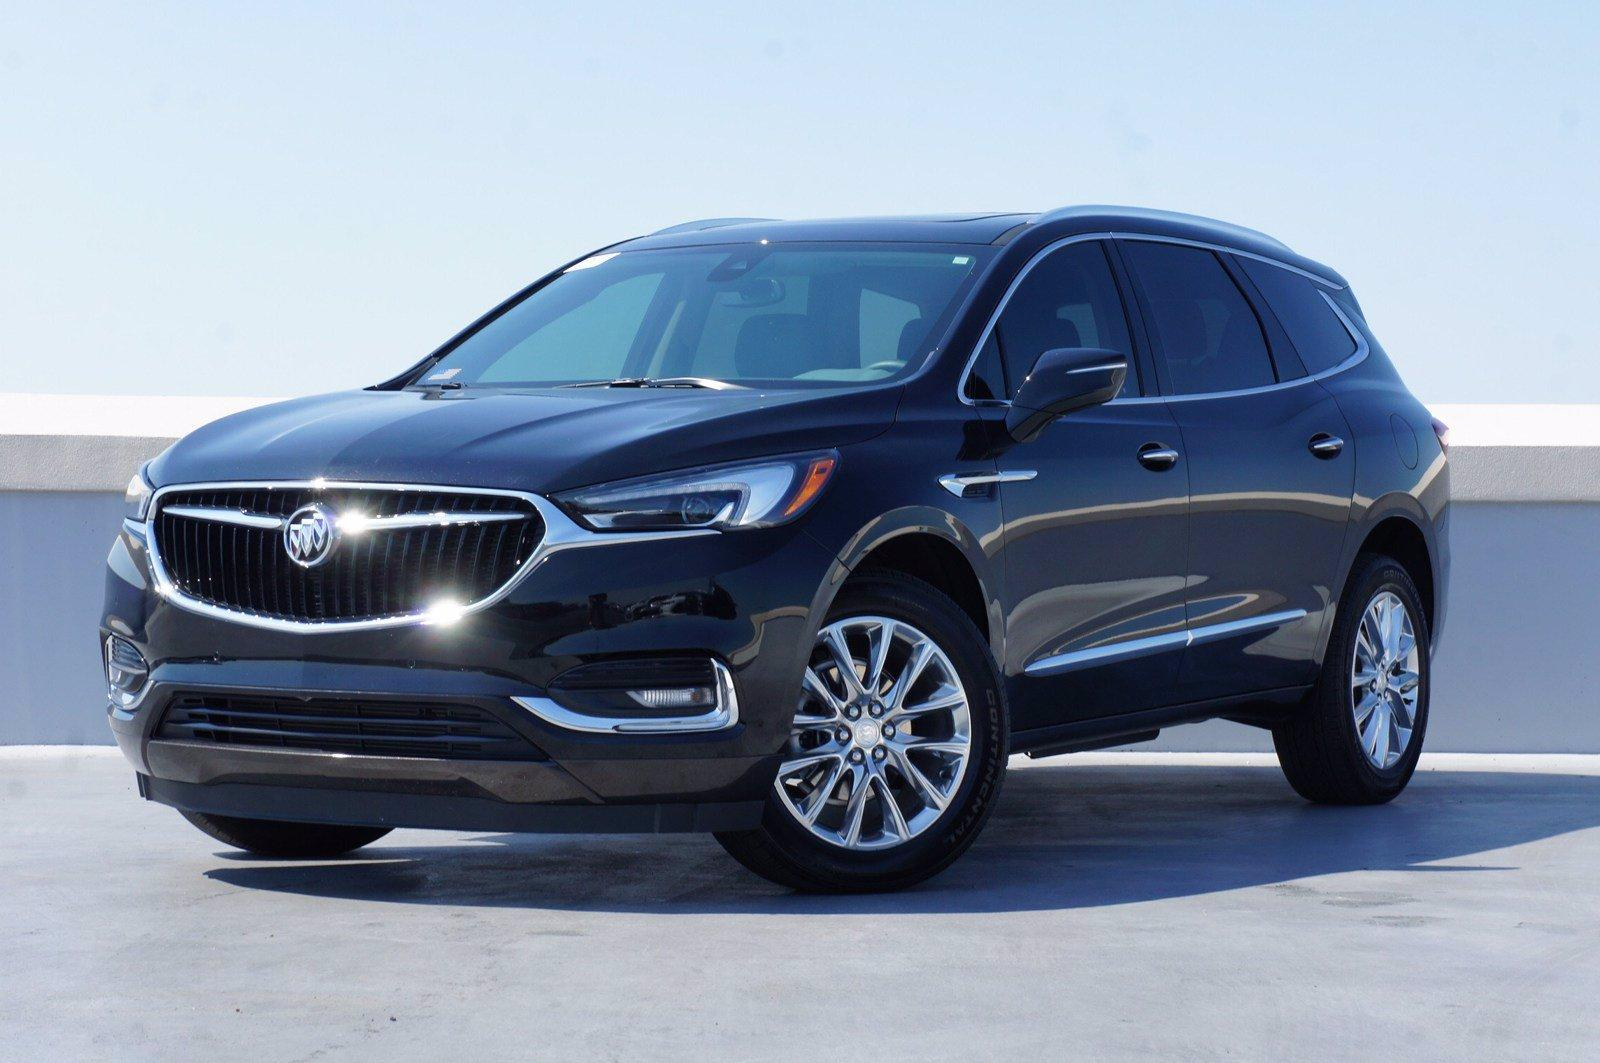 2021 Buick Enclave Vehicle Photo in Dallas, TX 75209